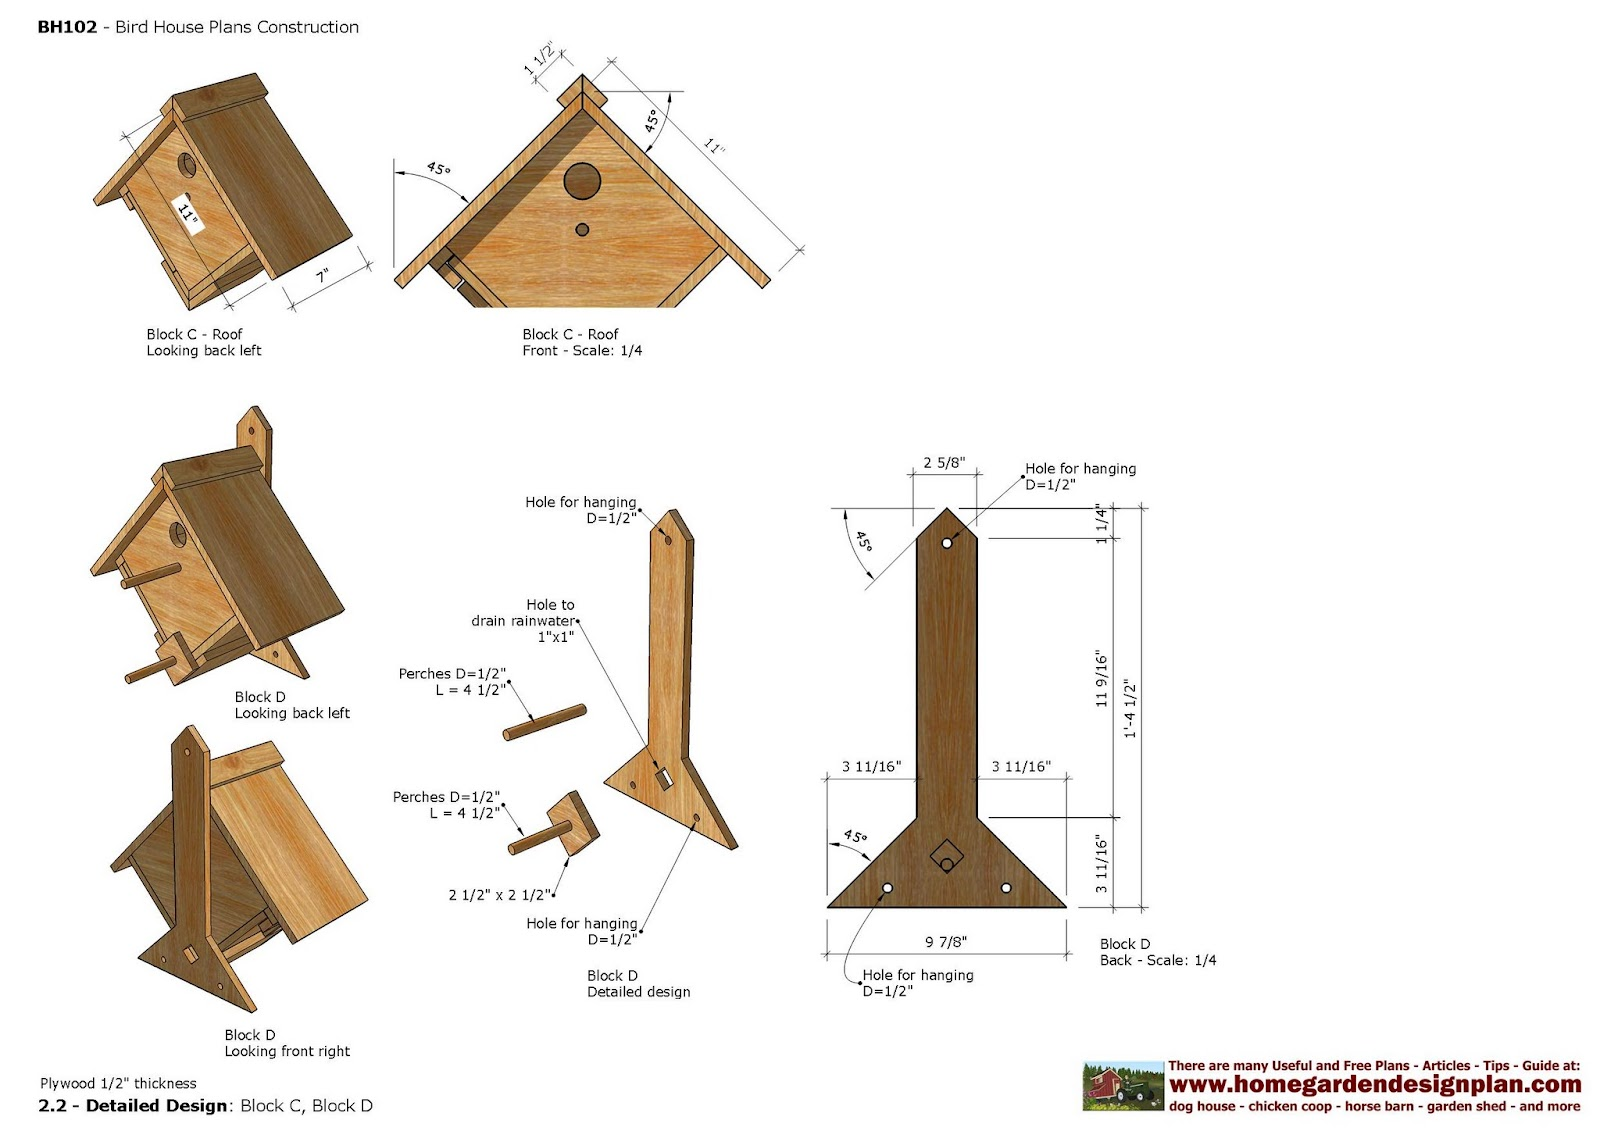 Home garden plans bh bird house plans construction House building plans